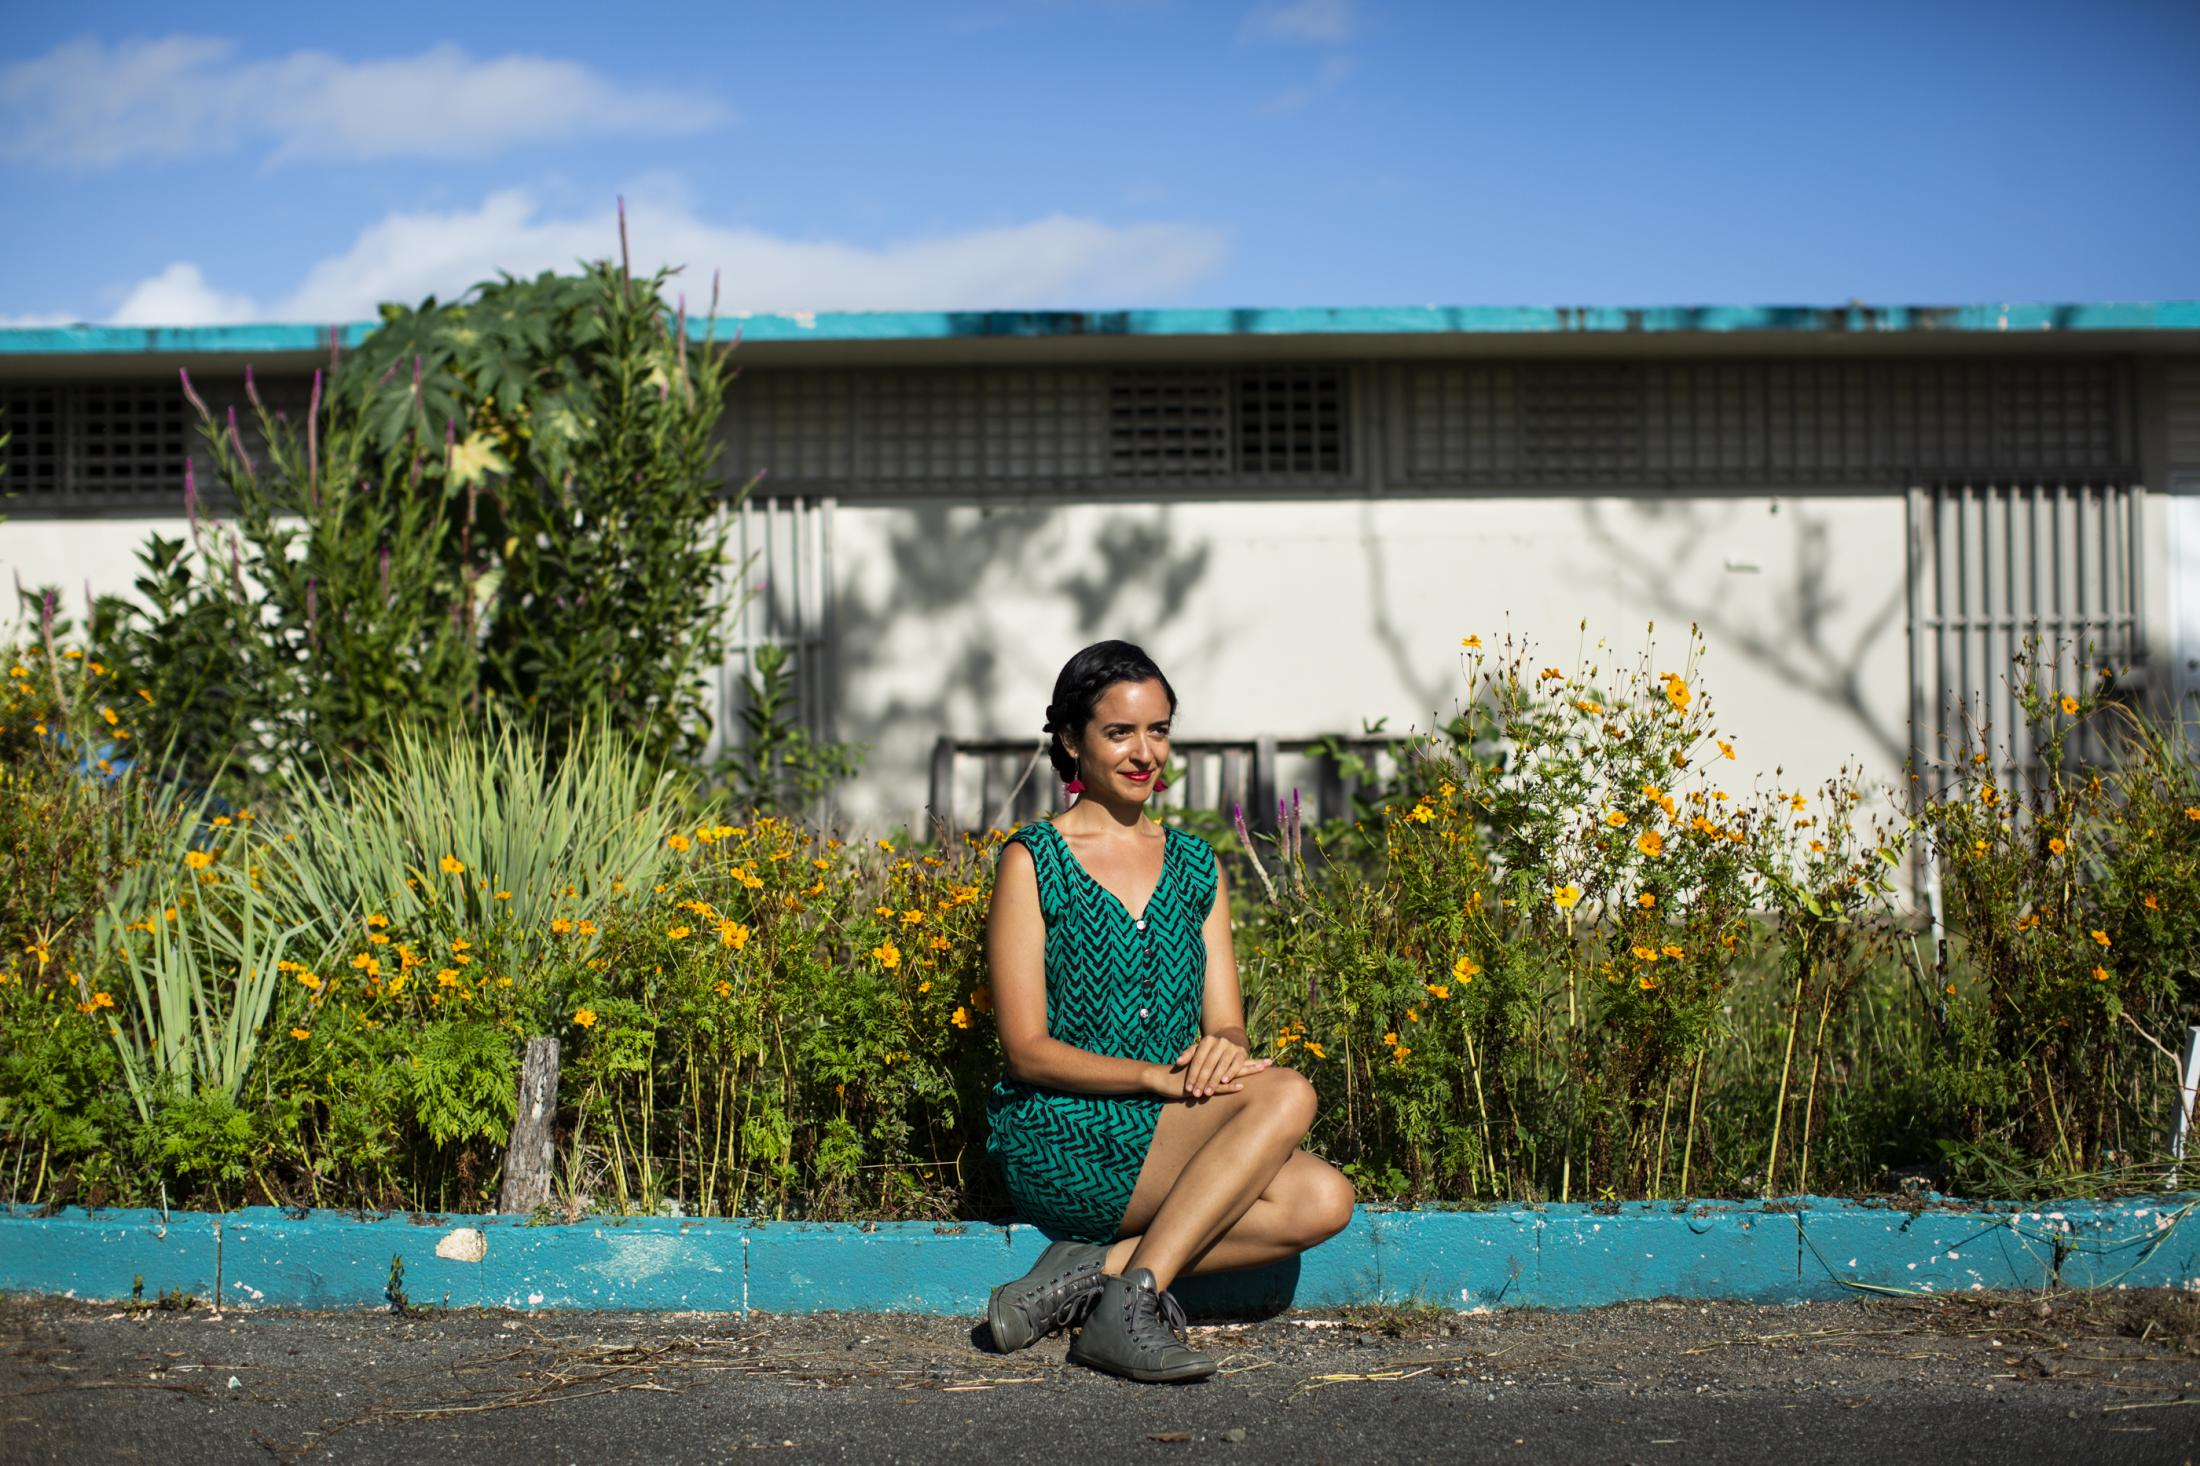 Carol Ramos-Gerena poses for a portrait at the Angel Ramos School, also known as the Berwind Middle School, where she has worked extensively with the public's school Berwind Middle School Urban Agroecological Project (in Spanish, Proyecto Agroecológico Urbano Intermedia Berwind - PAUIB) in San Juan, P.R. on July 22, 2020. Ramos-Gerena, a PhD student of Urban and Regional Planning Department at University of Buffalo, is the recipient of the Healthline & Feeding America Stronger Scholarship. (Erika P. Rodriguez for Healthline)